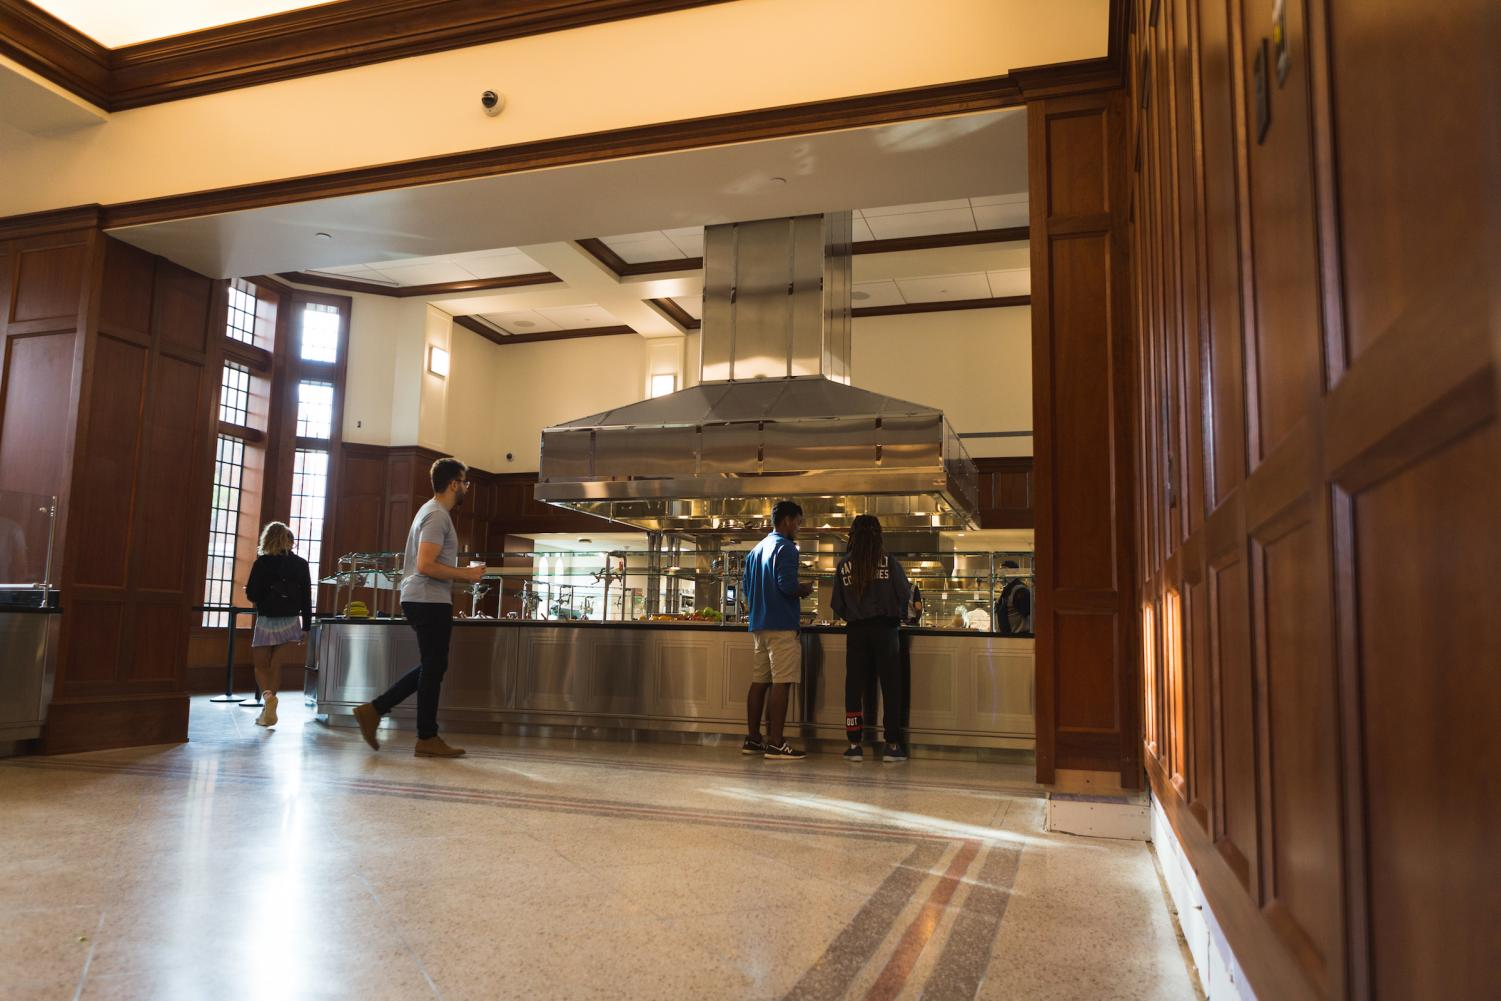 Students grab food in the E. Bronson Ingram dining hall. (Photo by Hunter Long)